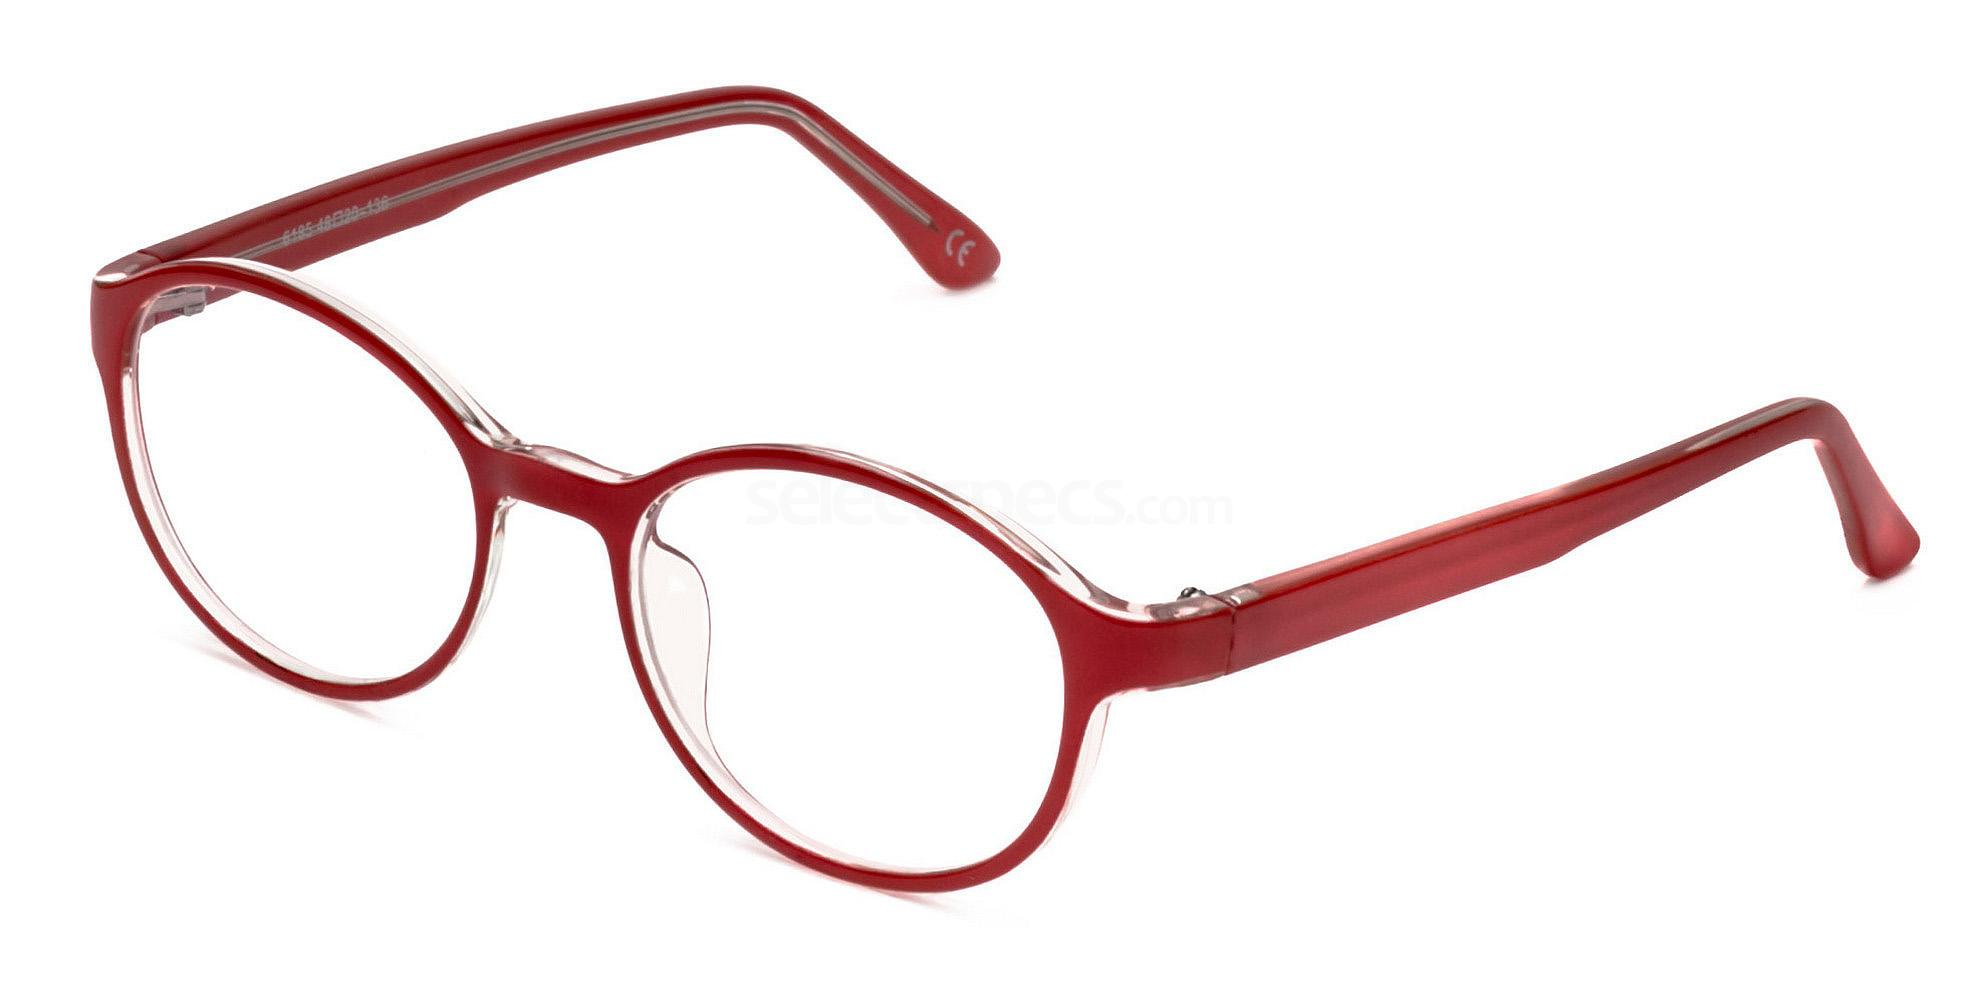 log-lady-twin-peaks-red-glasses-at-selectspecs